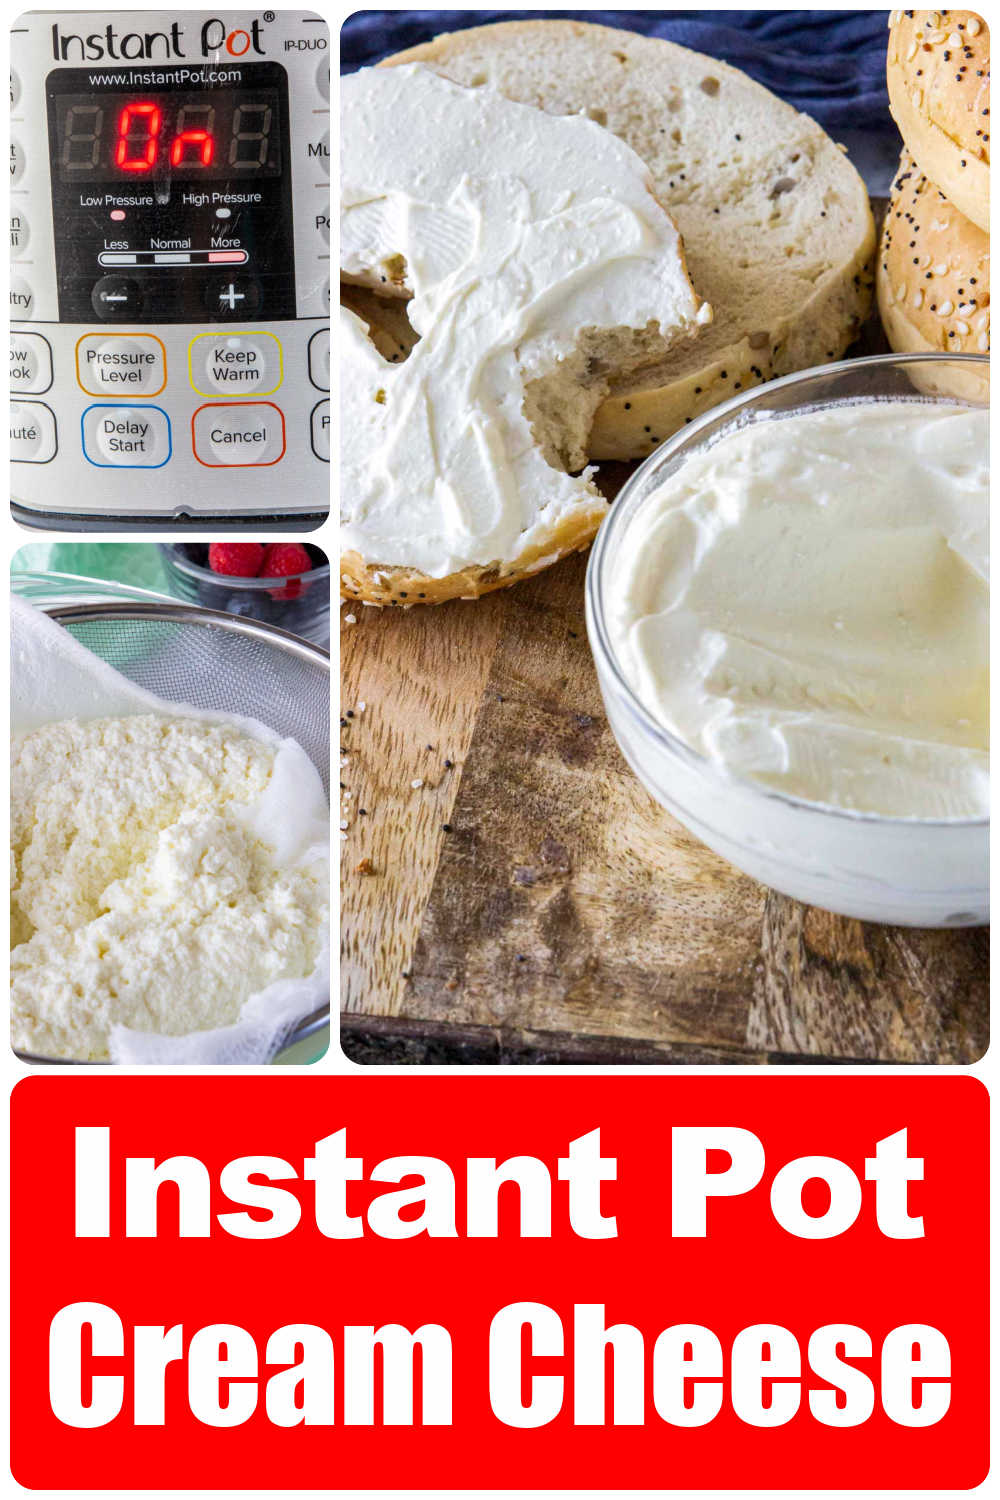 Instant Pot Cream Cheese {30 Minutes}